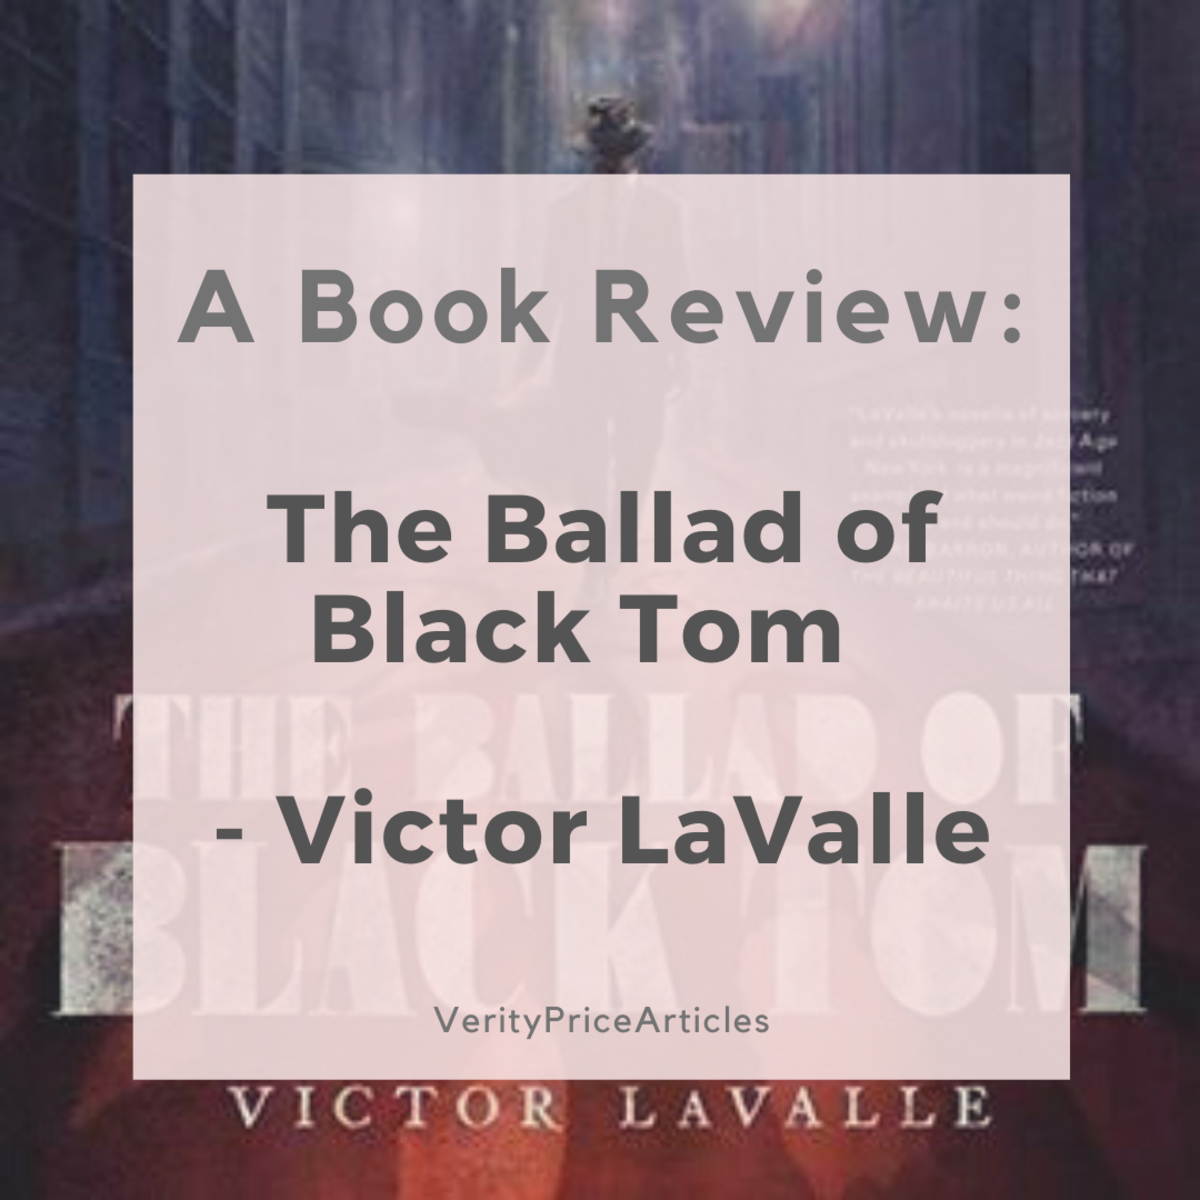 """A Book Review of """"The Ballad of Black Tom"""" by Victor LaValle"""